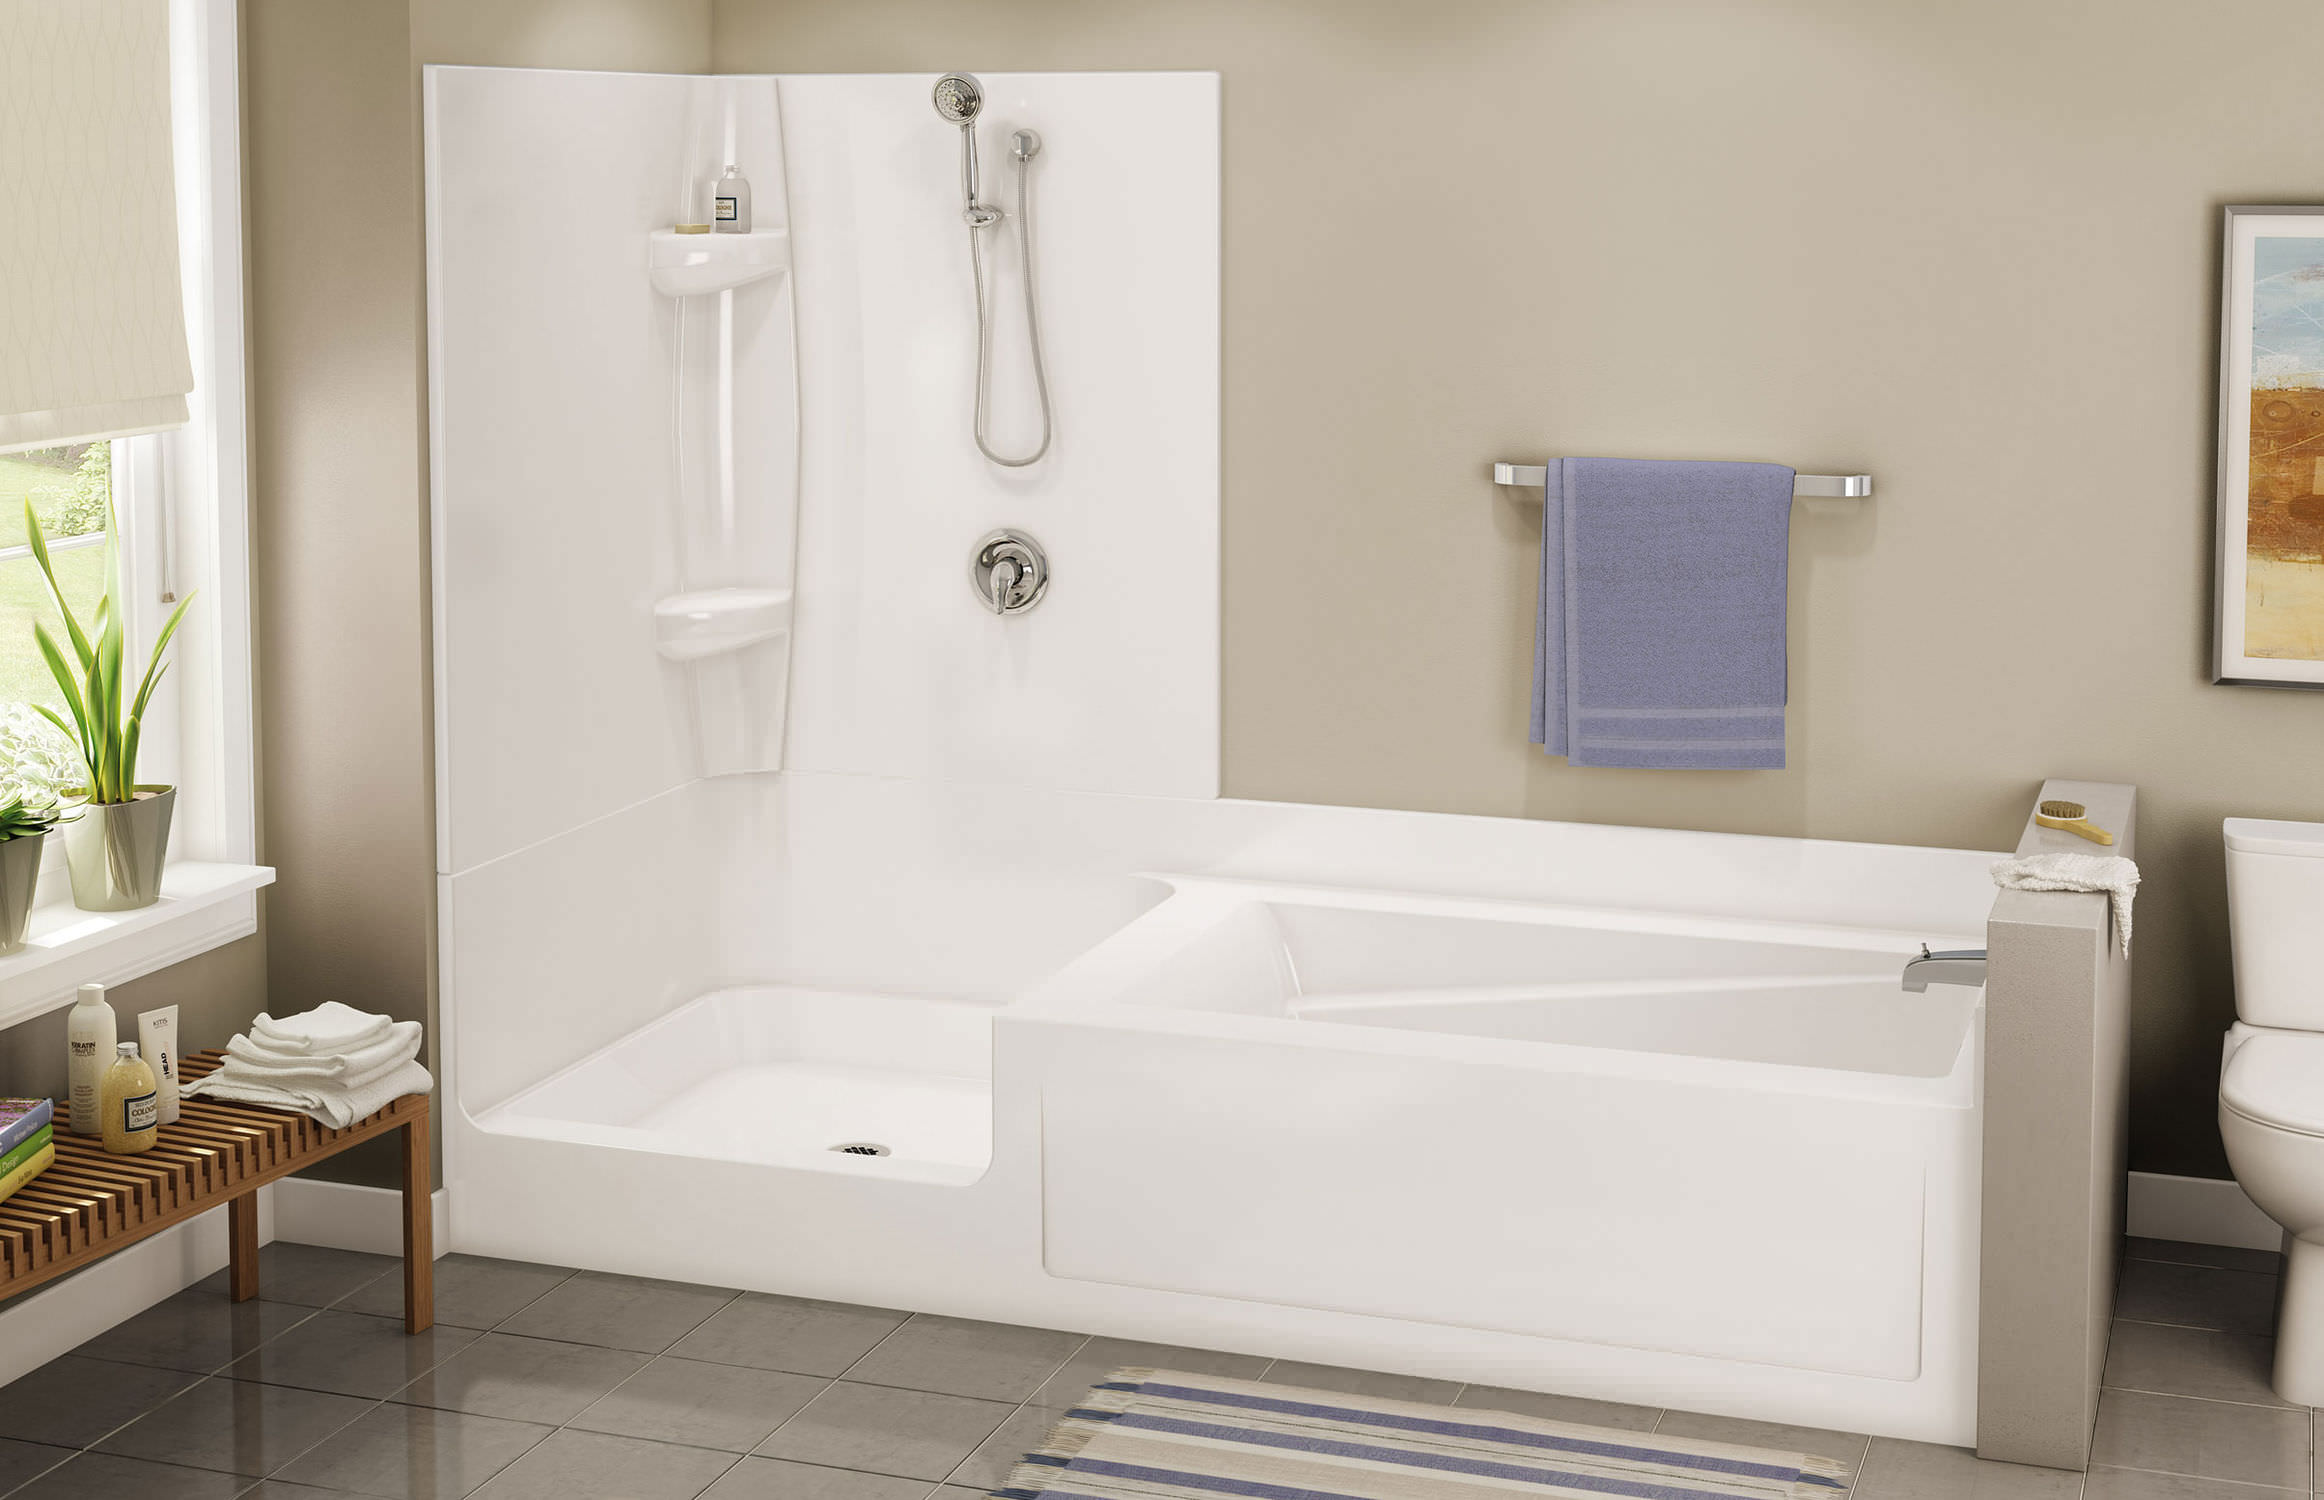 Acrylic Tub Shower Units. Built in bathtub shower combination  rectangular acrylic EXHIBIT TSC 102